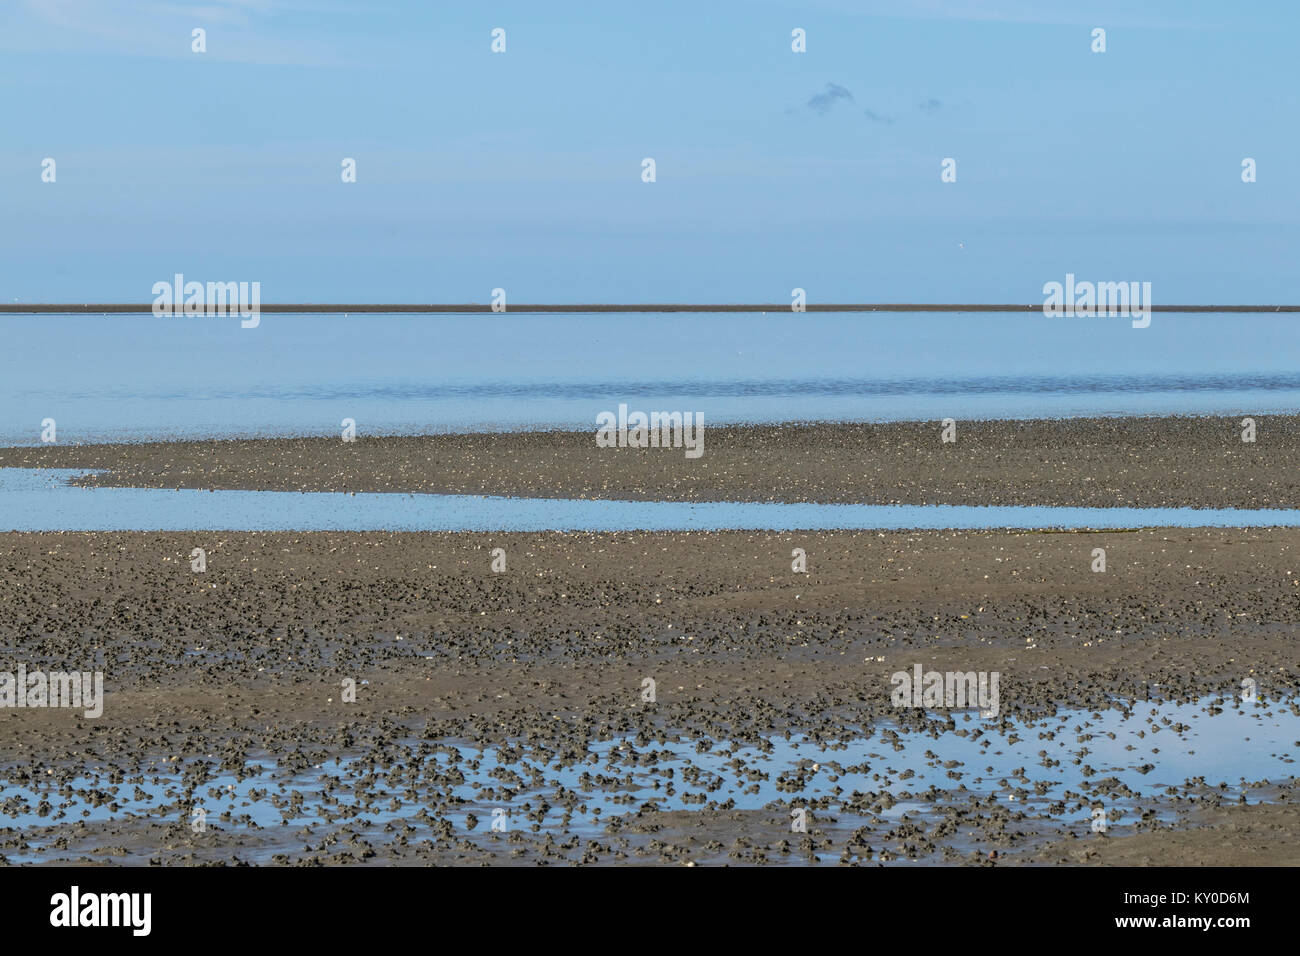 Cast of defaecated sediment of Lugworms (Arenicola marina) at low tide on the tidal flats at Mandoe - Stock Image